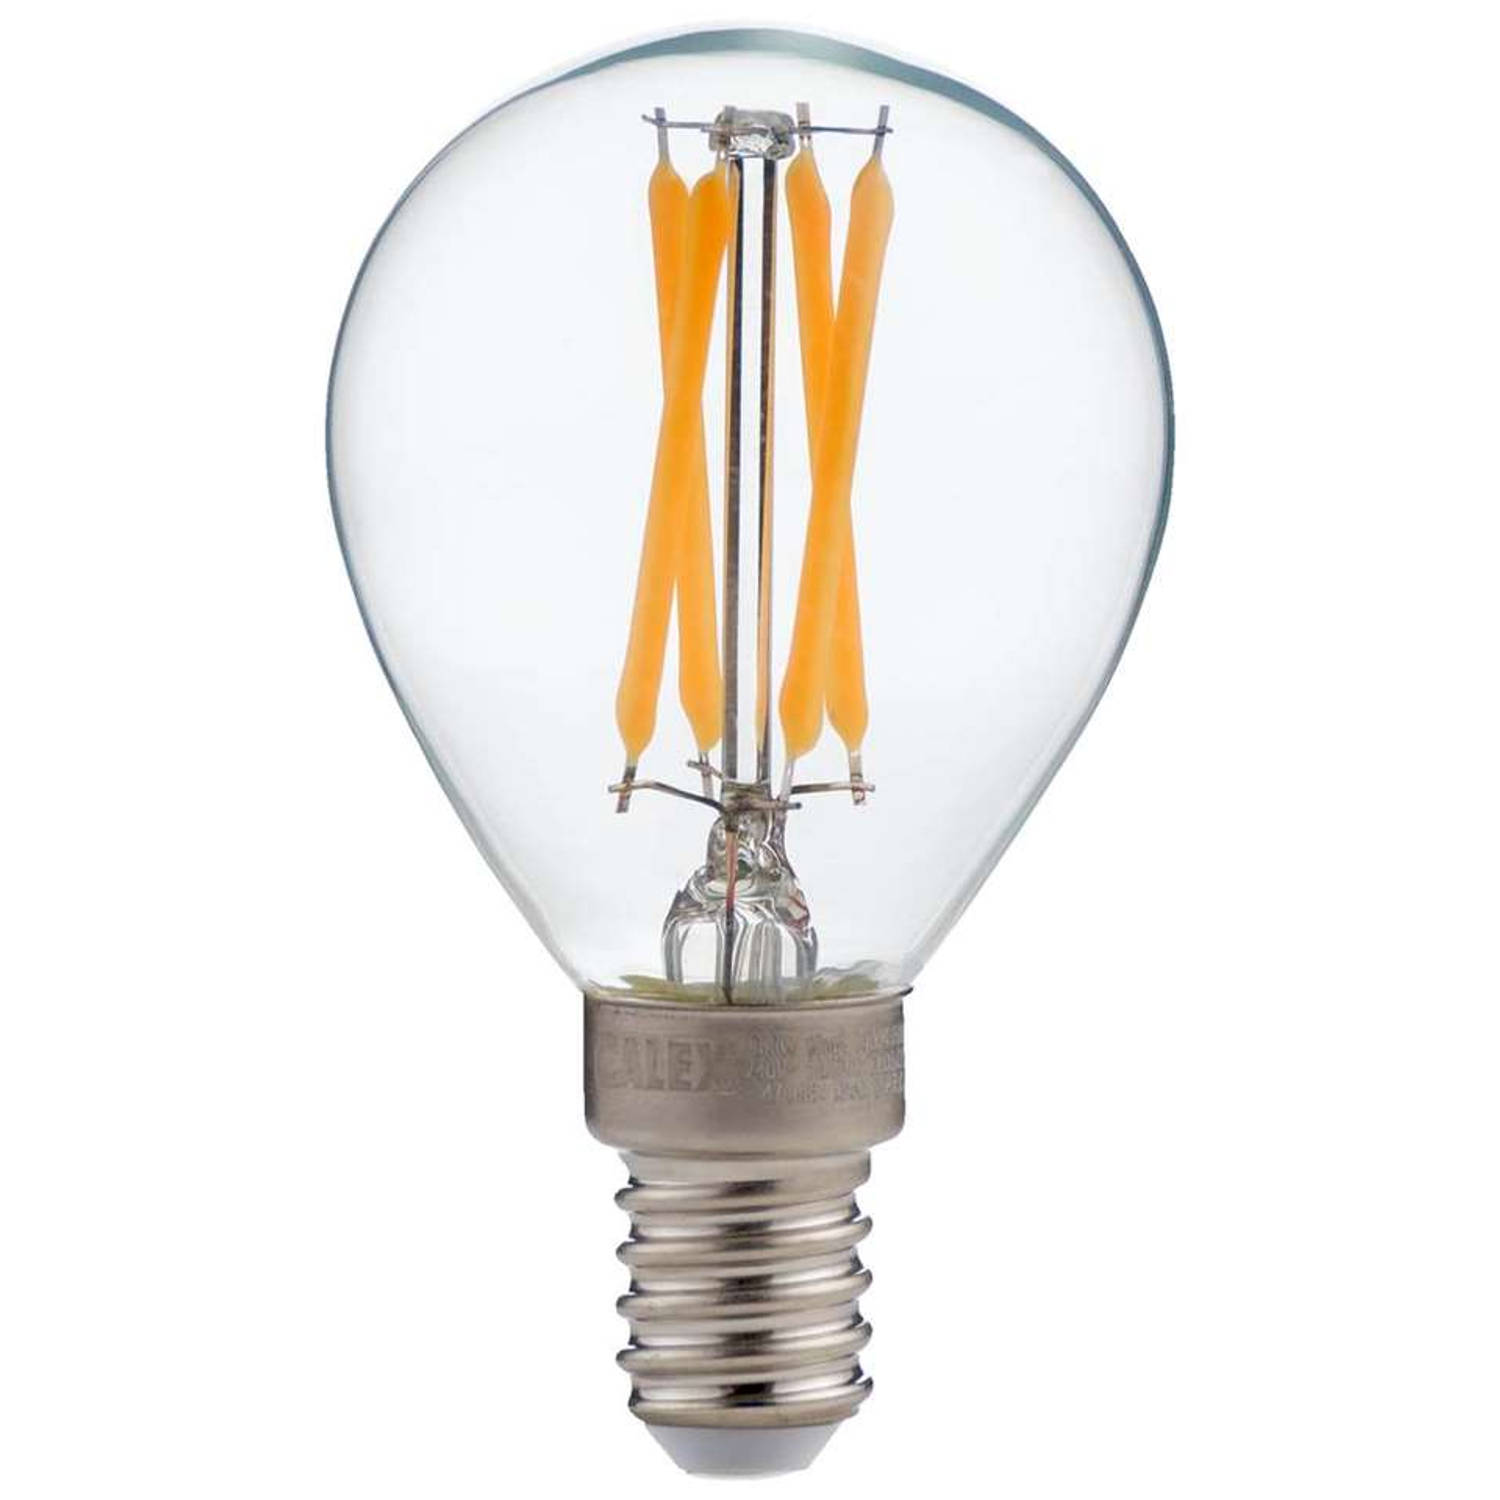 LED FILAMENT KOGELLAMP 240V 3,5W E14 P45 DIMBAAR